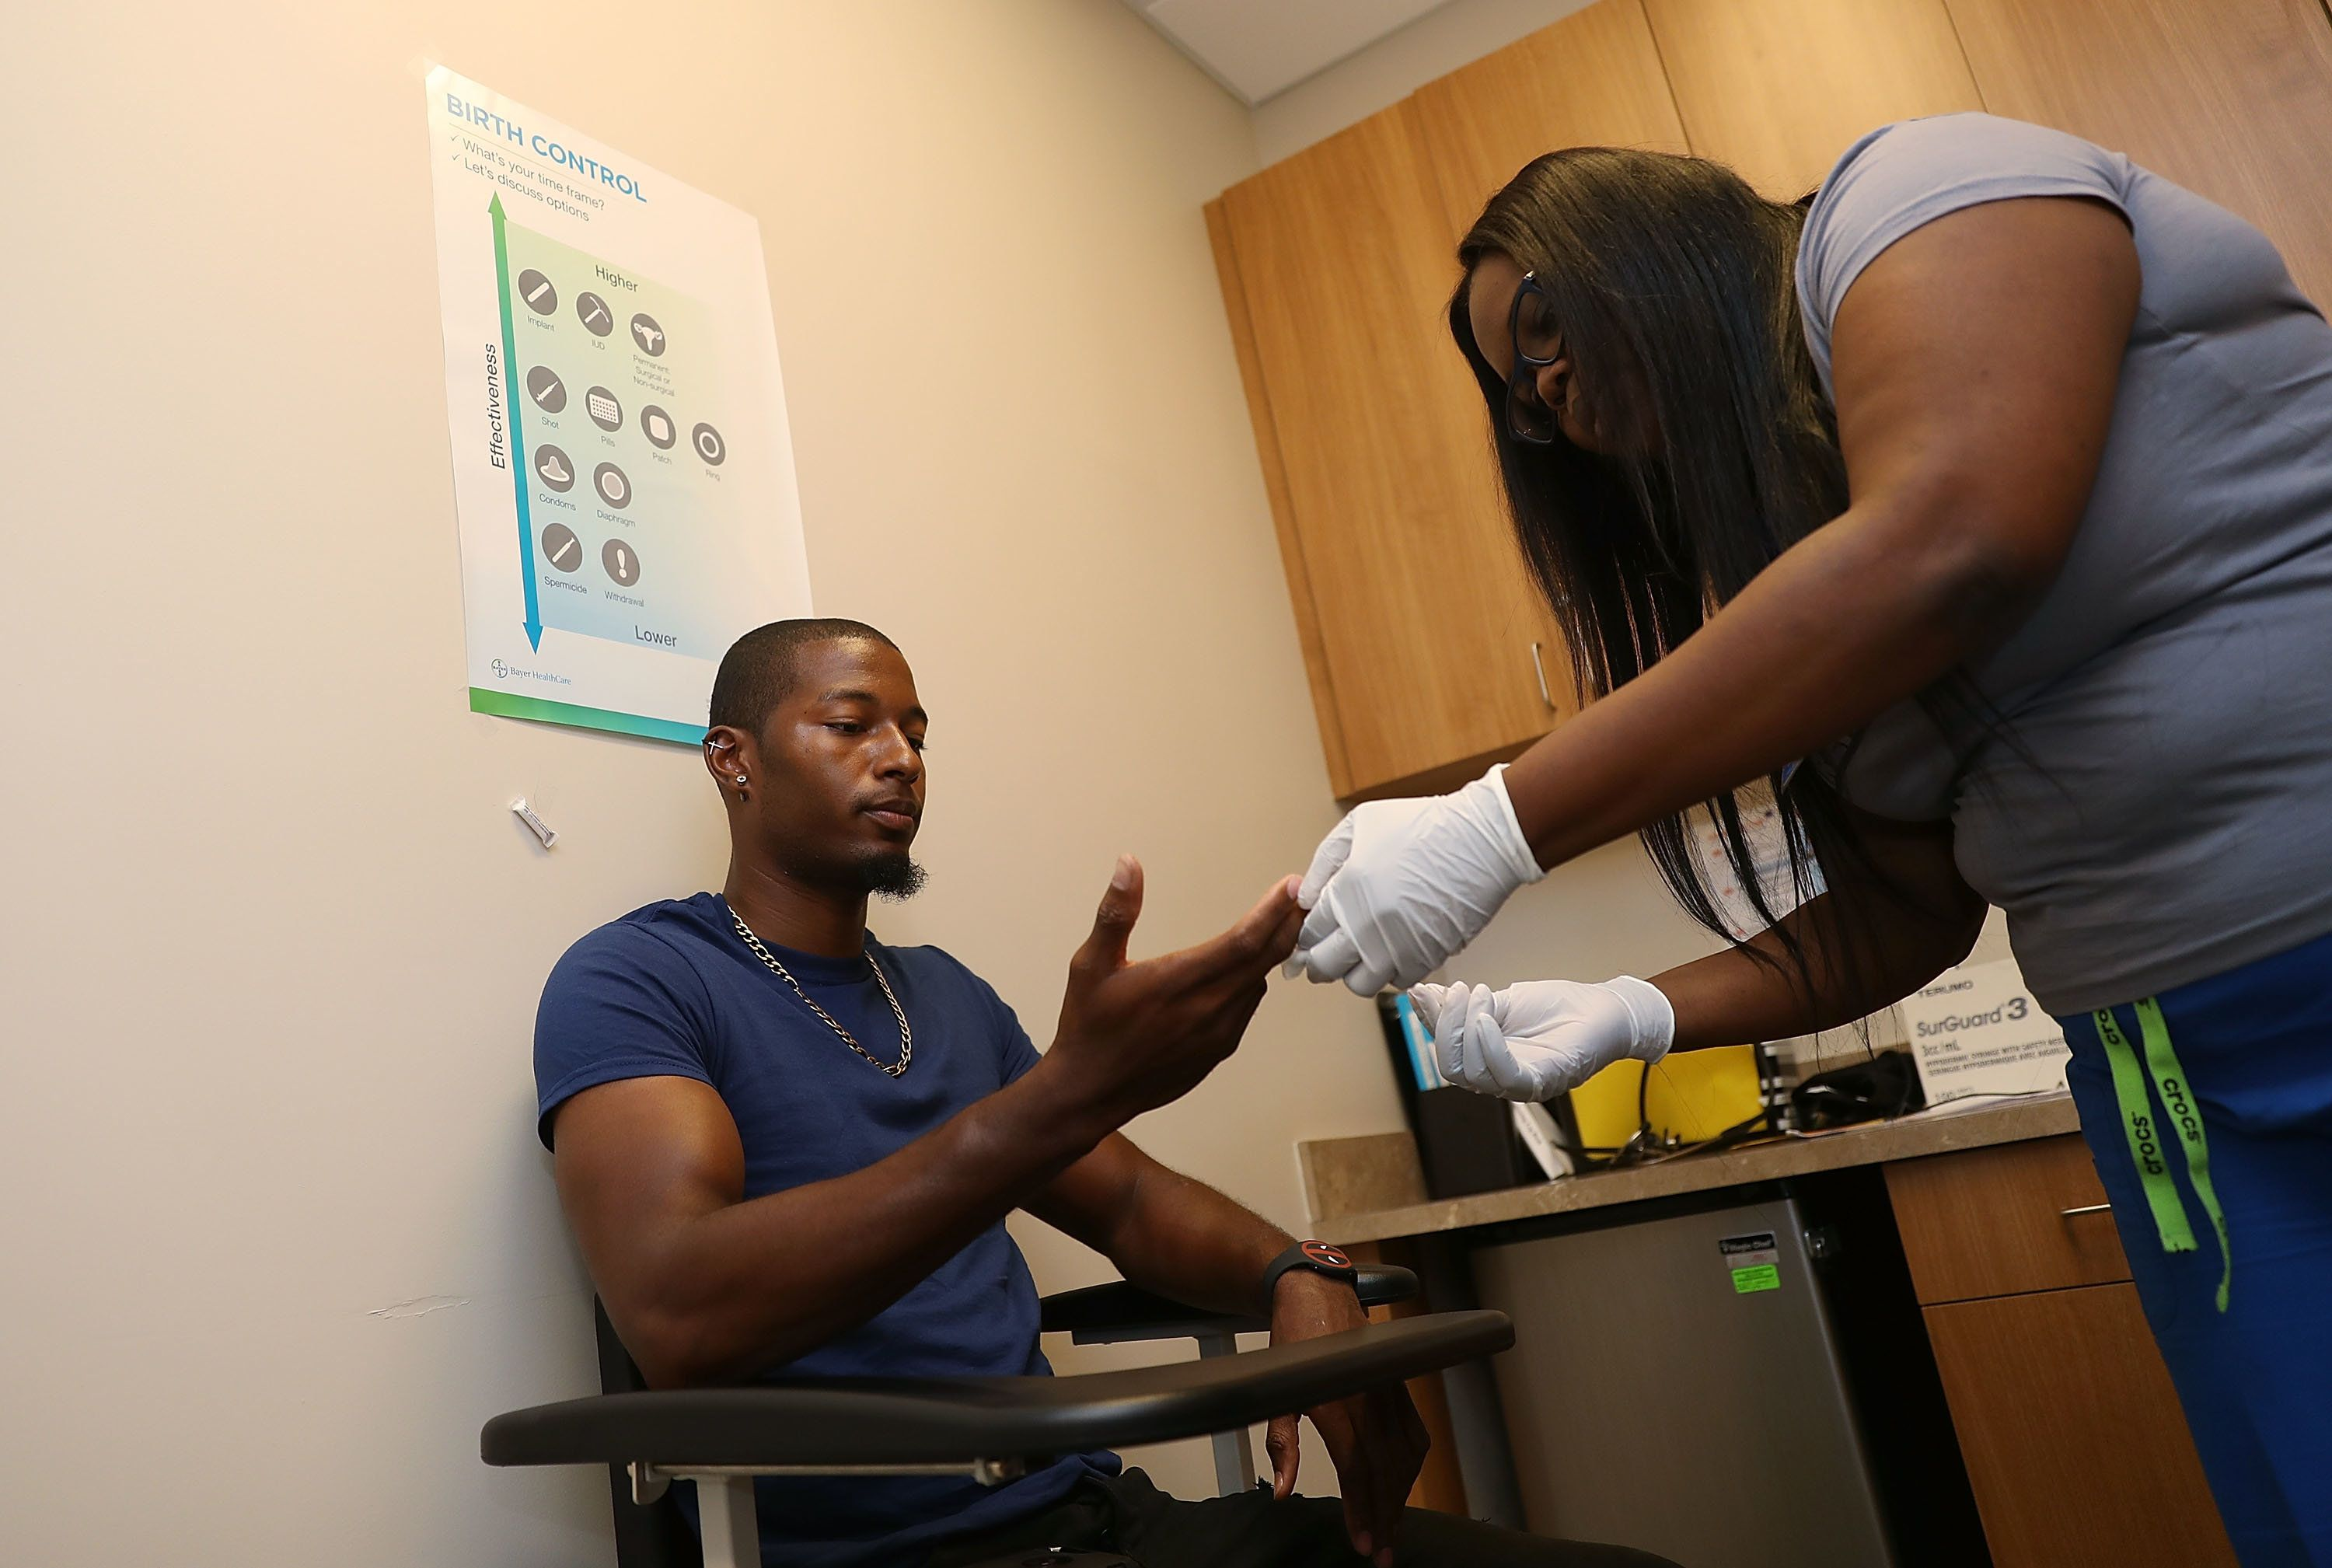 MIAMI, FL - JUNE 27:  Jamal Wilson has blood drawn from a finger as he receives a free HIV test from a medical assistant (who didn't want to provide her name) on National HIV Testing Day at a Planned Parenthood health center on June 27, 2017 in Miami, Florida. Planned Parenthood and other health care providers are offering the free service during the annual event in hopes of encouraging people to get tested for HIV and become educated about their status.  (Photo by Joe Raedle/Getty Images)